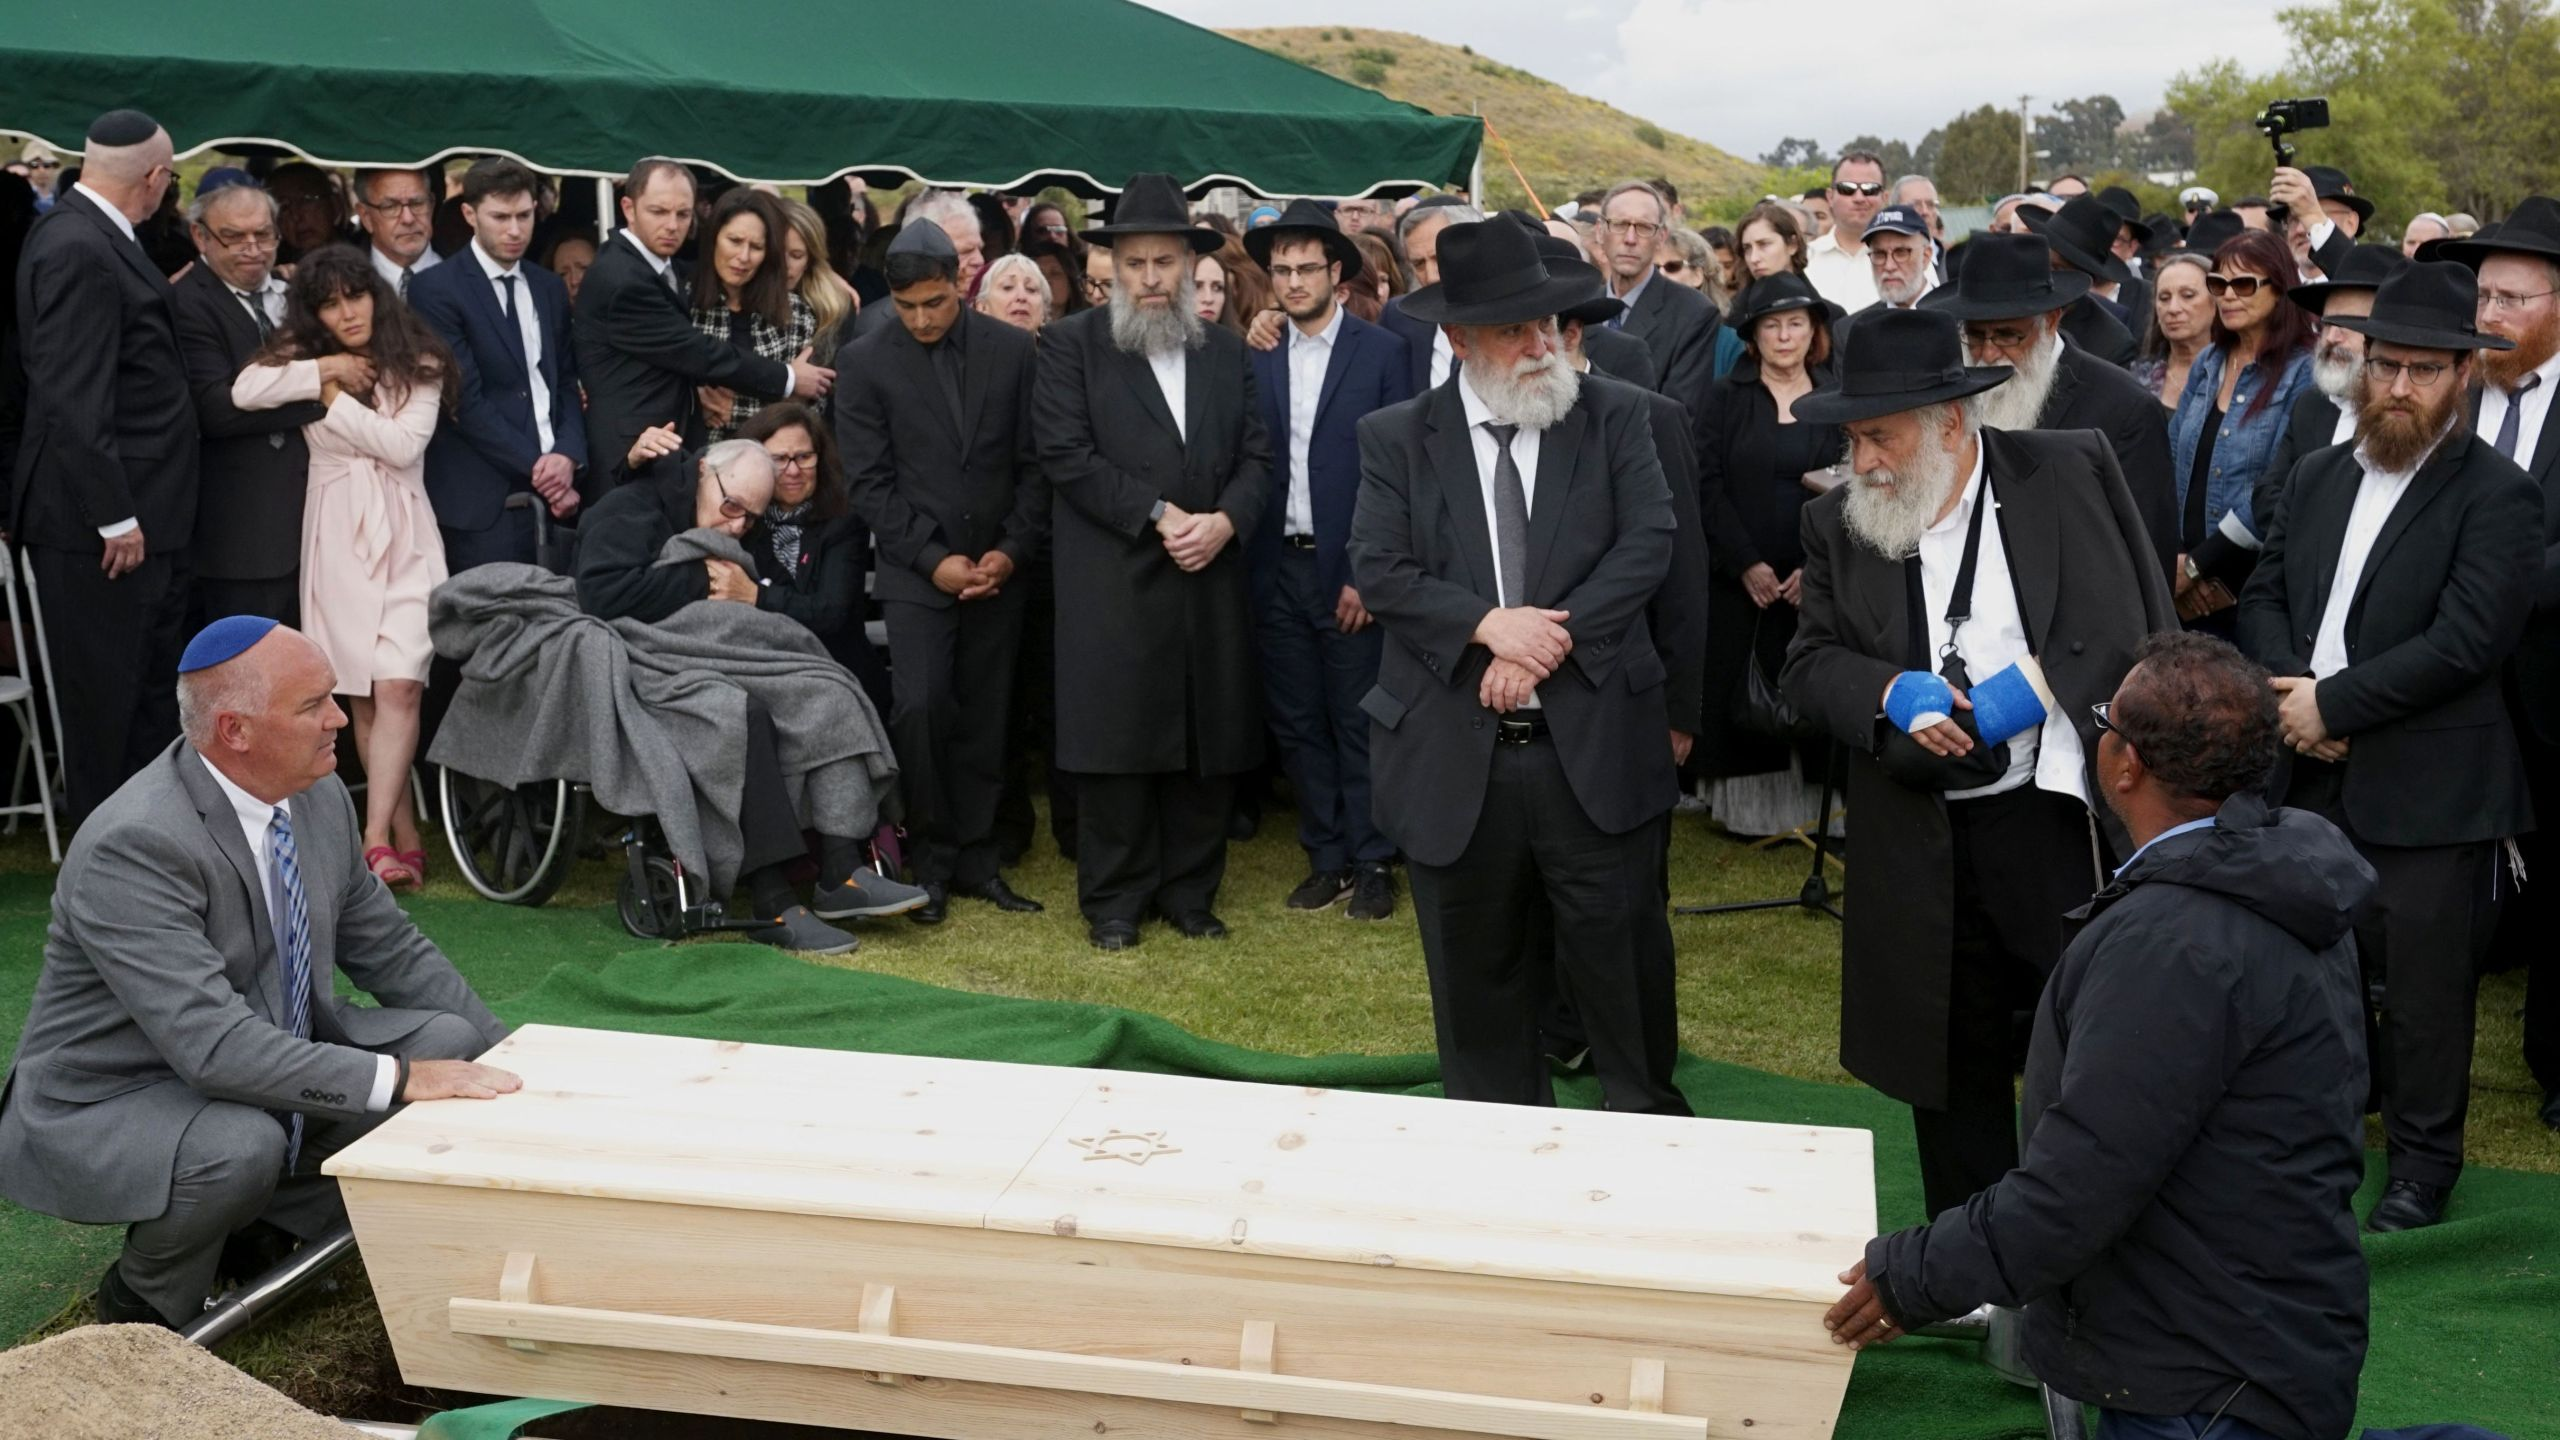 Mourners look over a coffin during the burial service for Lori Gilbert Kaye, who was killed in the Chabad of Poway Synagogue shooting, at El Camino cemetery in San Diego on April 29, 2019. (Credit: SANDY HUFFAKER/AFP/Getty Images)